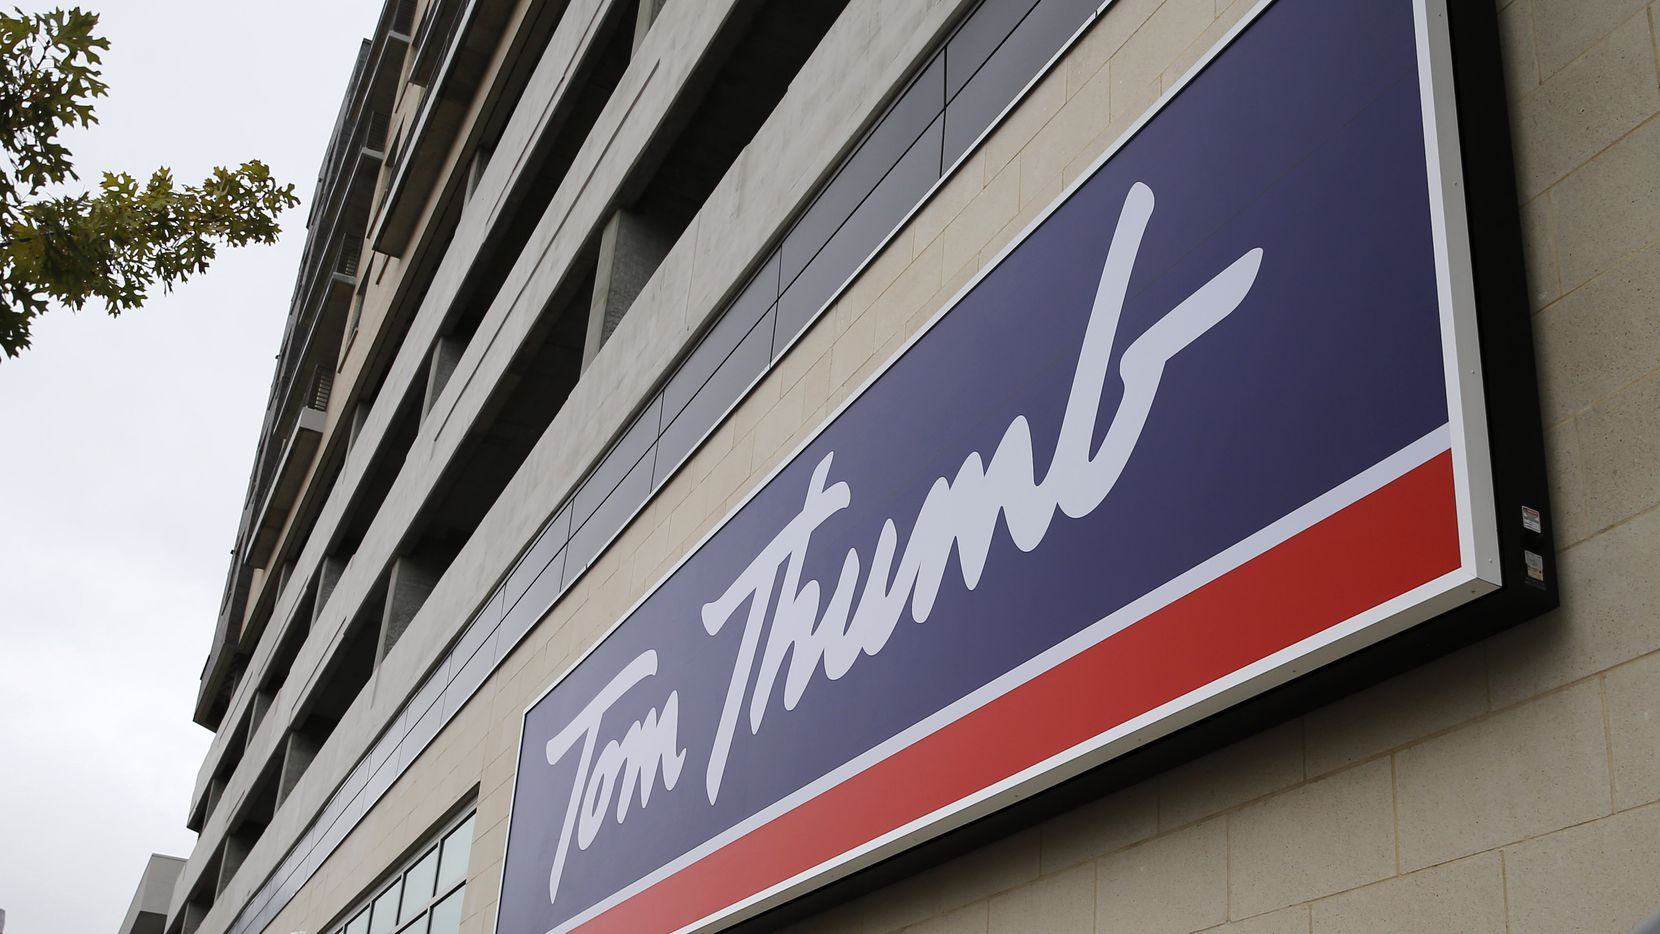 Tom Thumb grocery store just east of downtown Dallas on Live Oak Street.